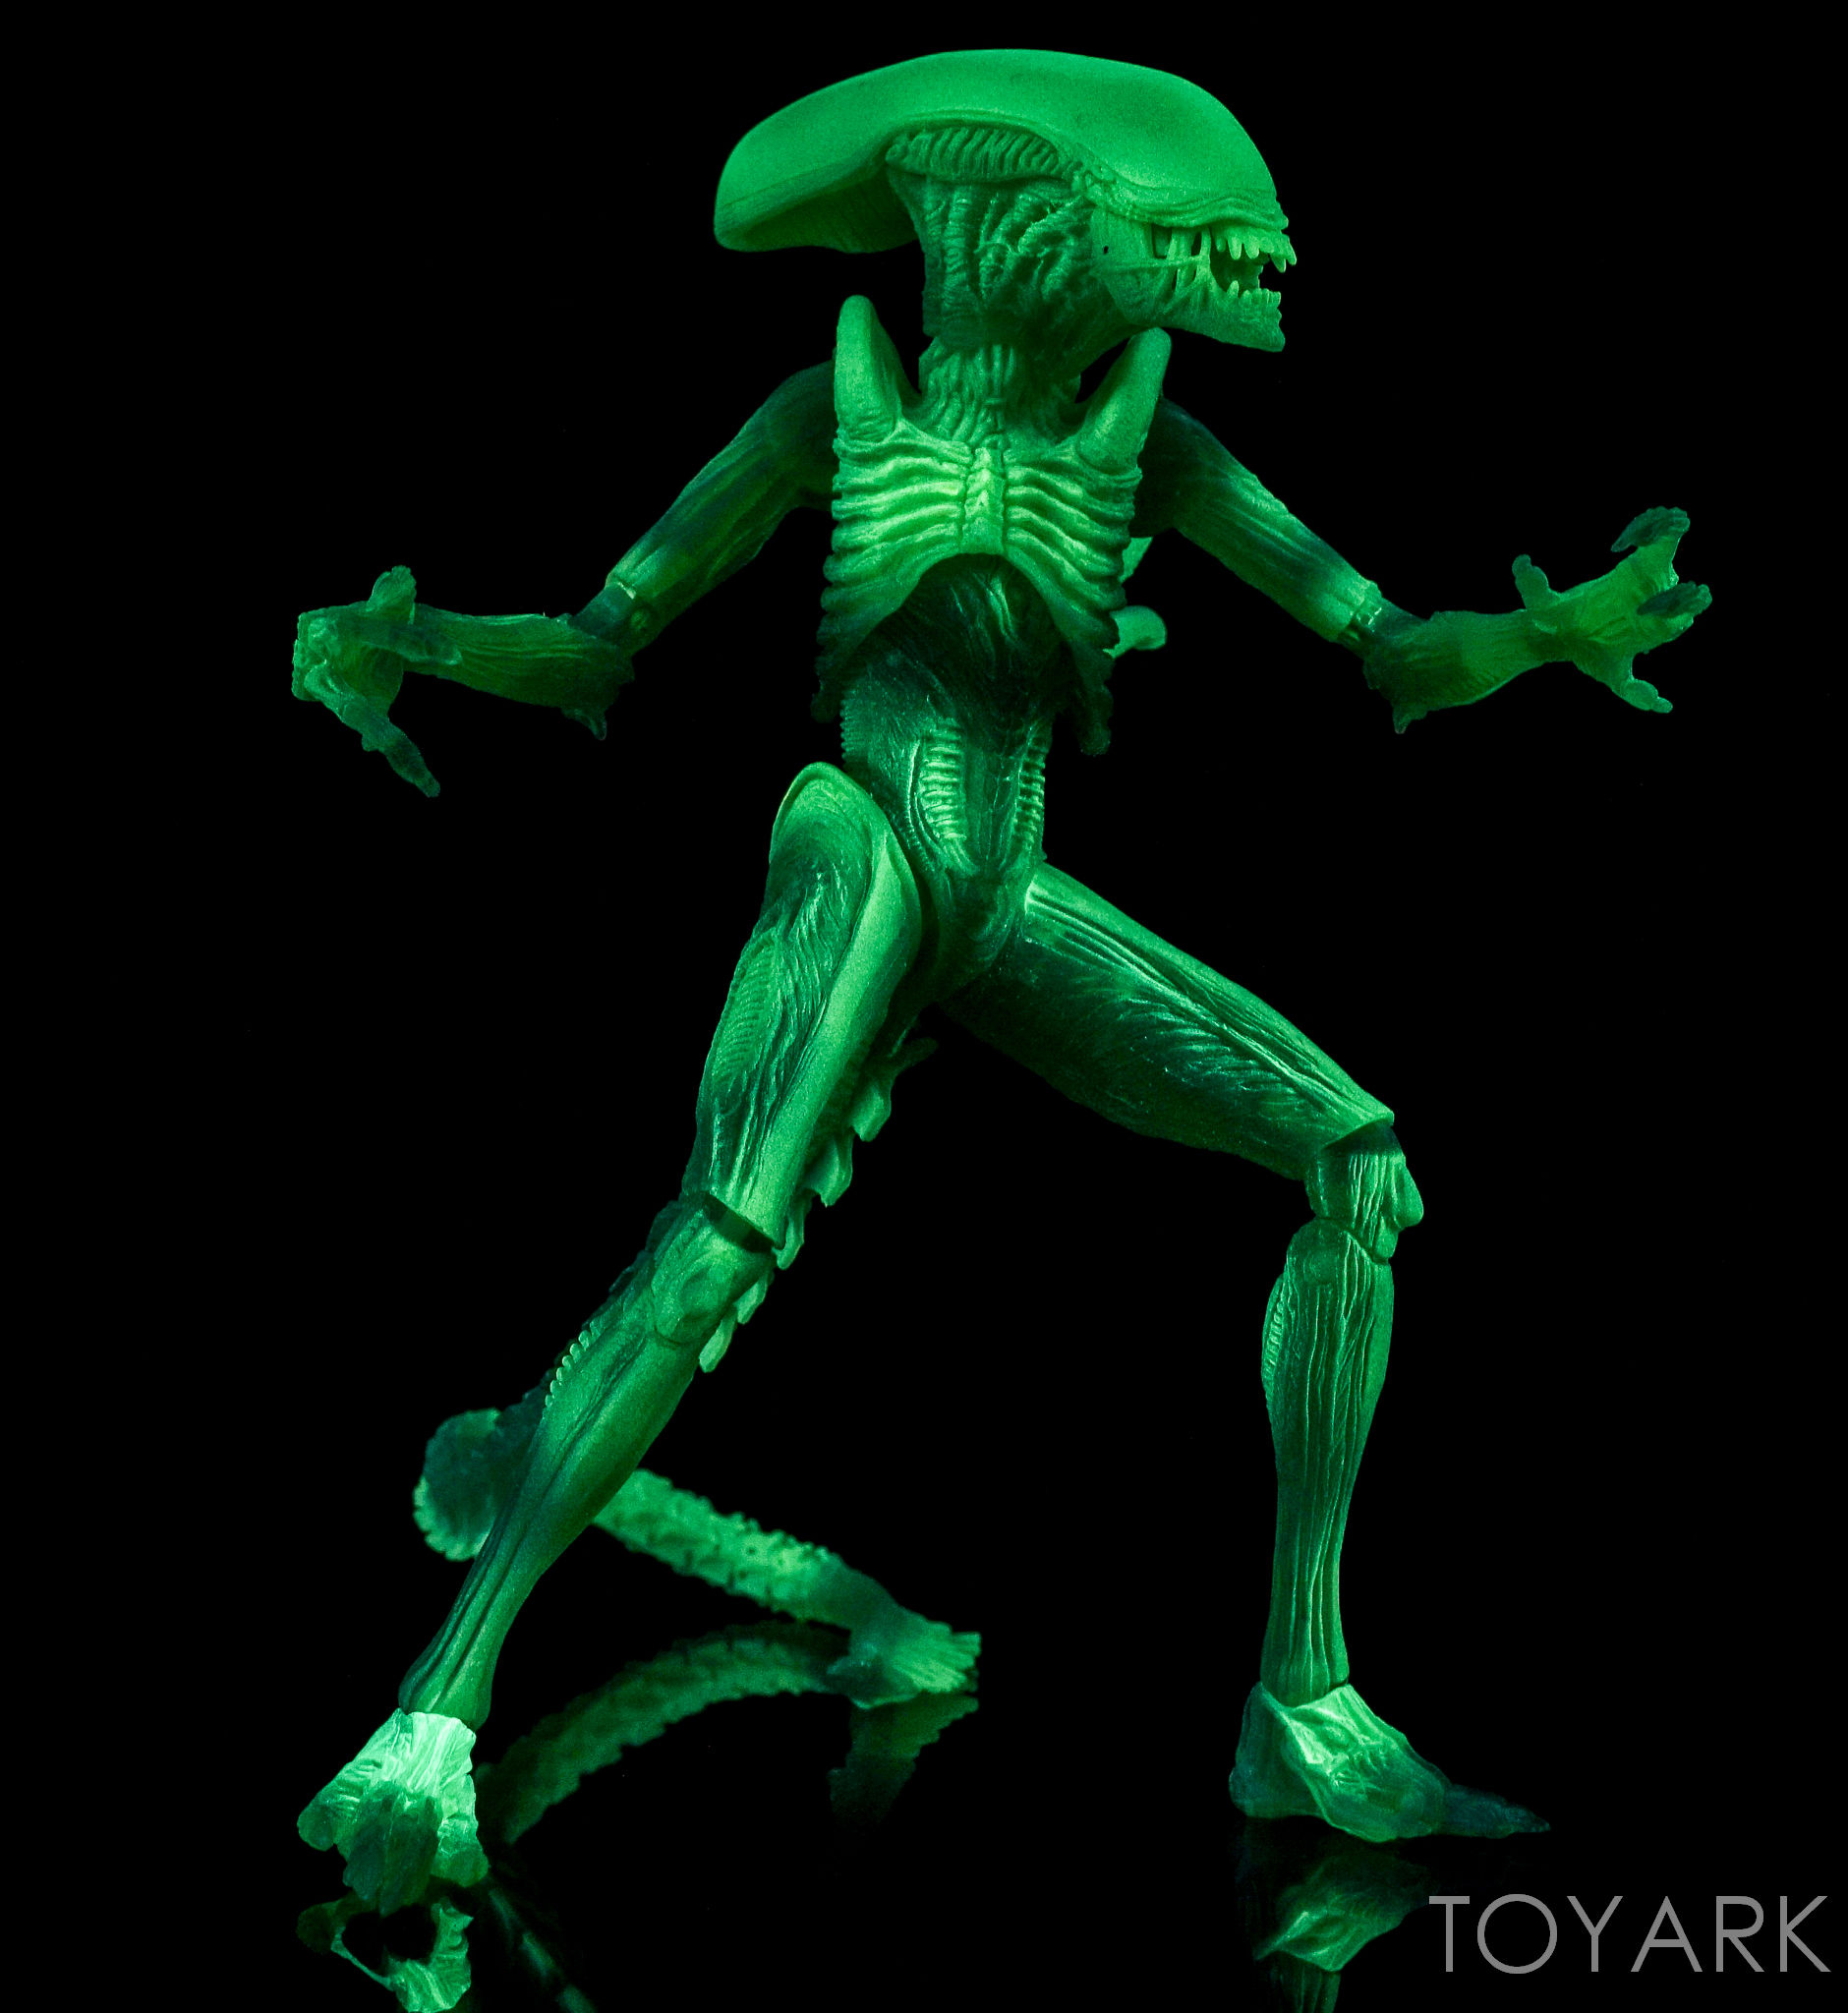 http://news.toyark.com/wp-content/uploads/sites/4/2016/09/NECA-AvP-Thermal-Vision-Alien-022.jpg